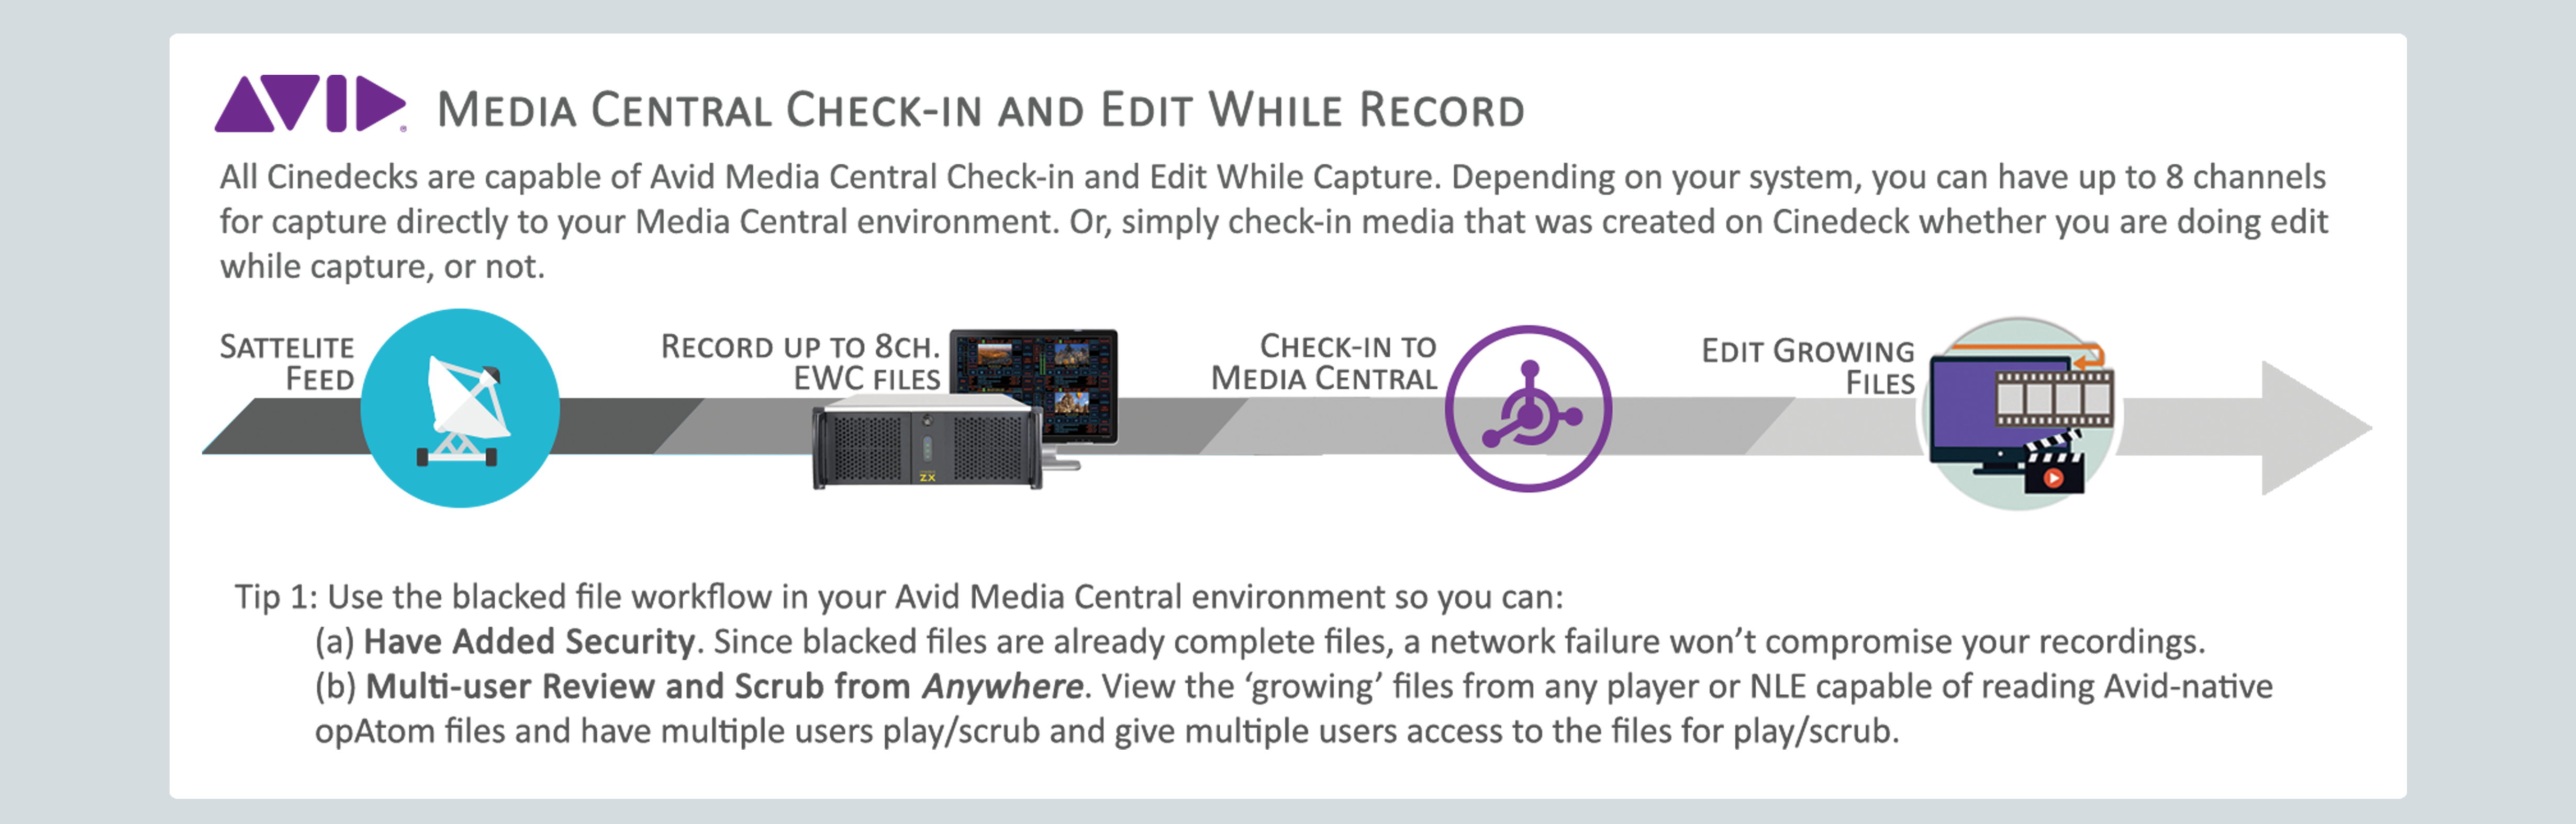 Post NAB News_Cinedeck_Avid Interplay Check In & Edit While Record_Workflow Diagram